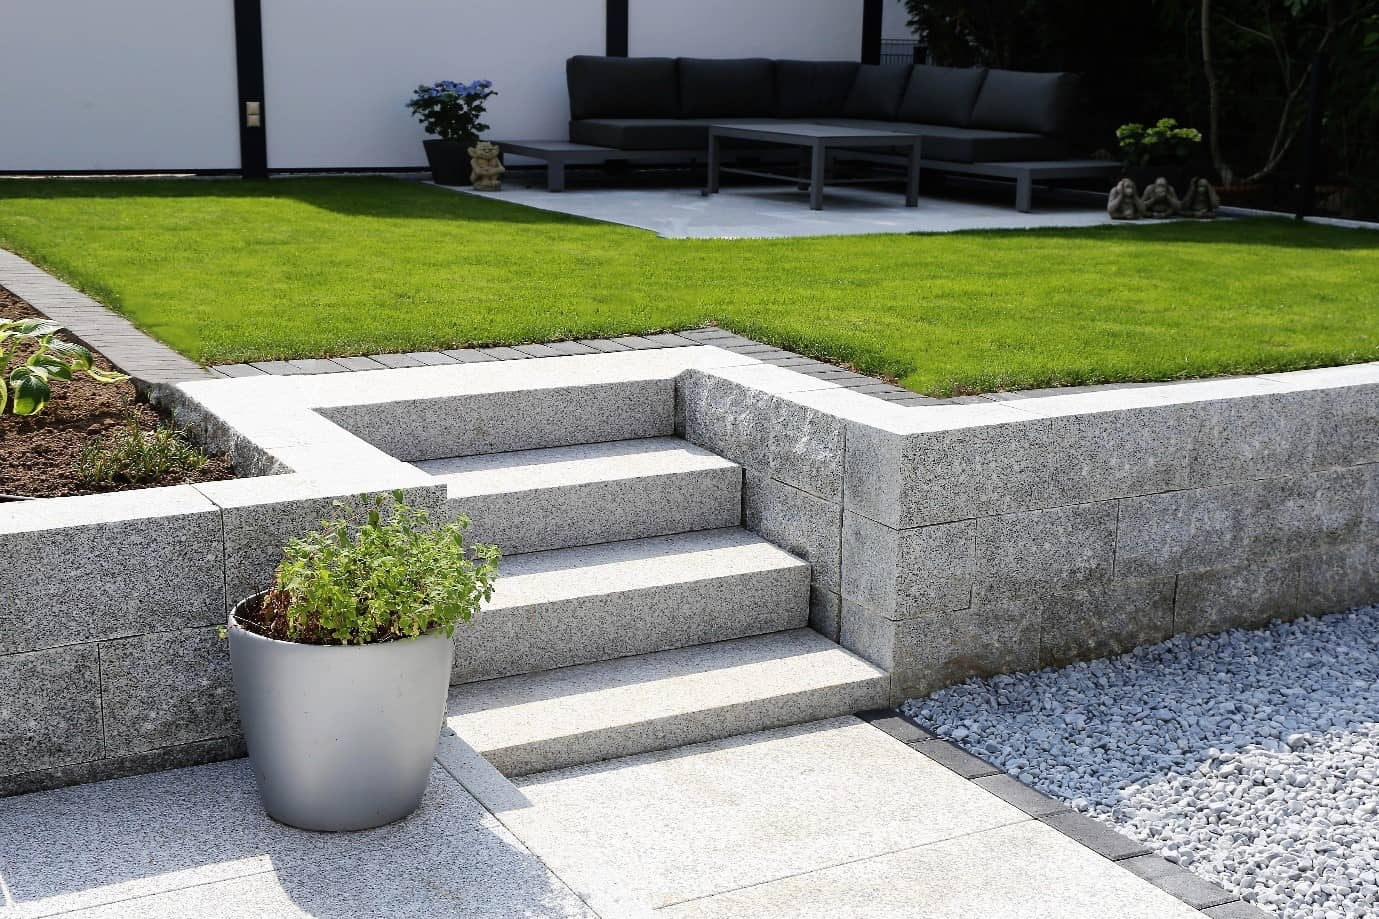 Turn Your Grounds Into a Modern Formal Landscape With Synthetic Grass in Dallas